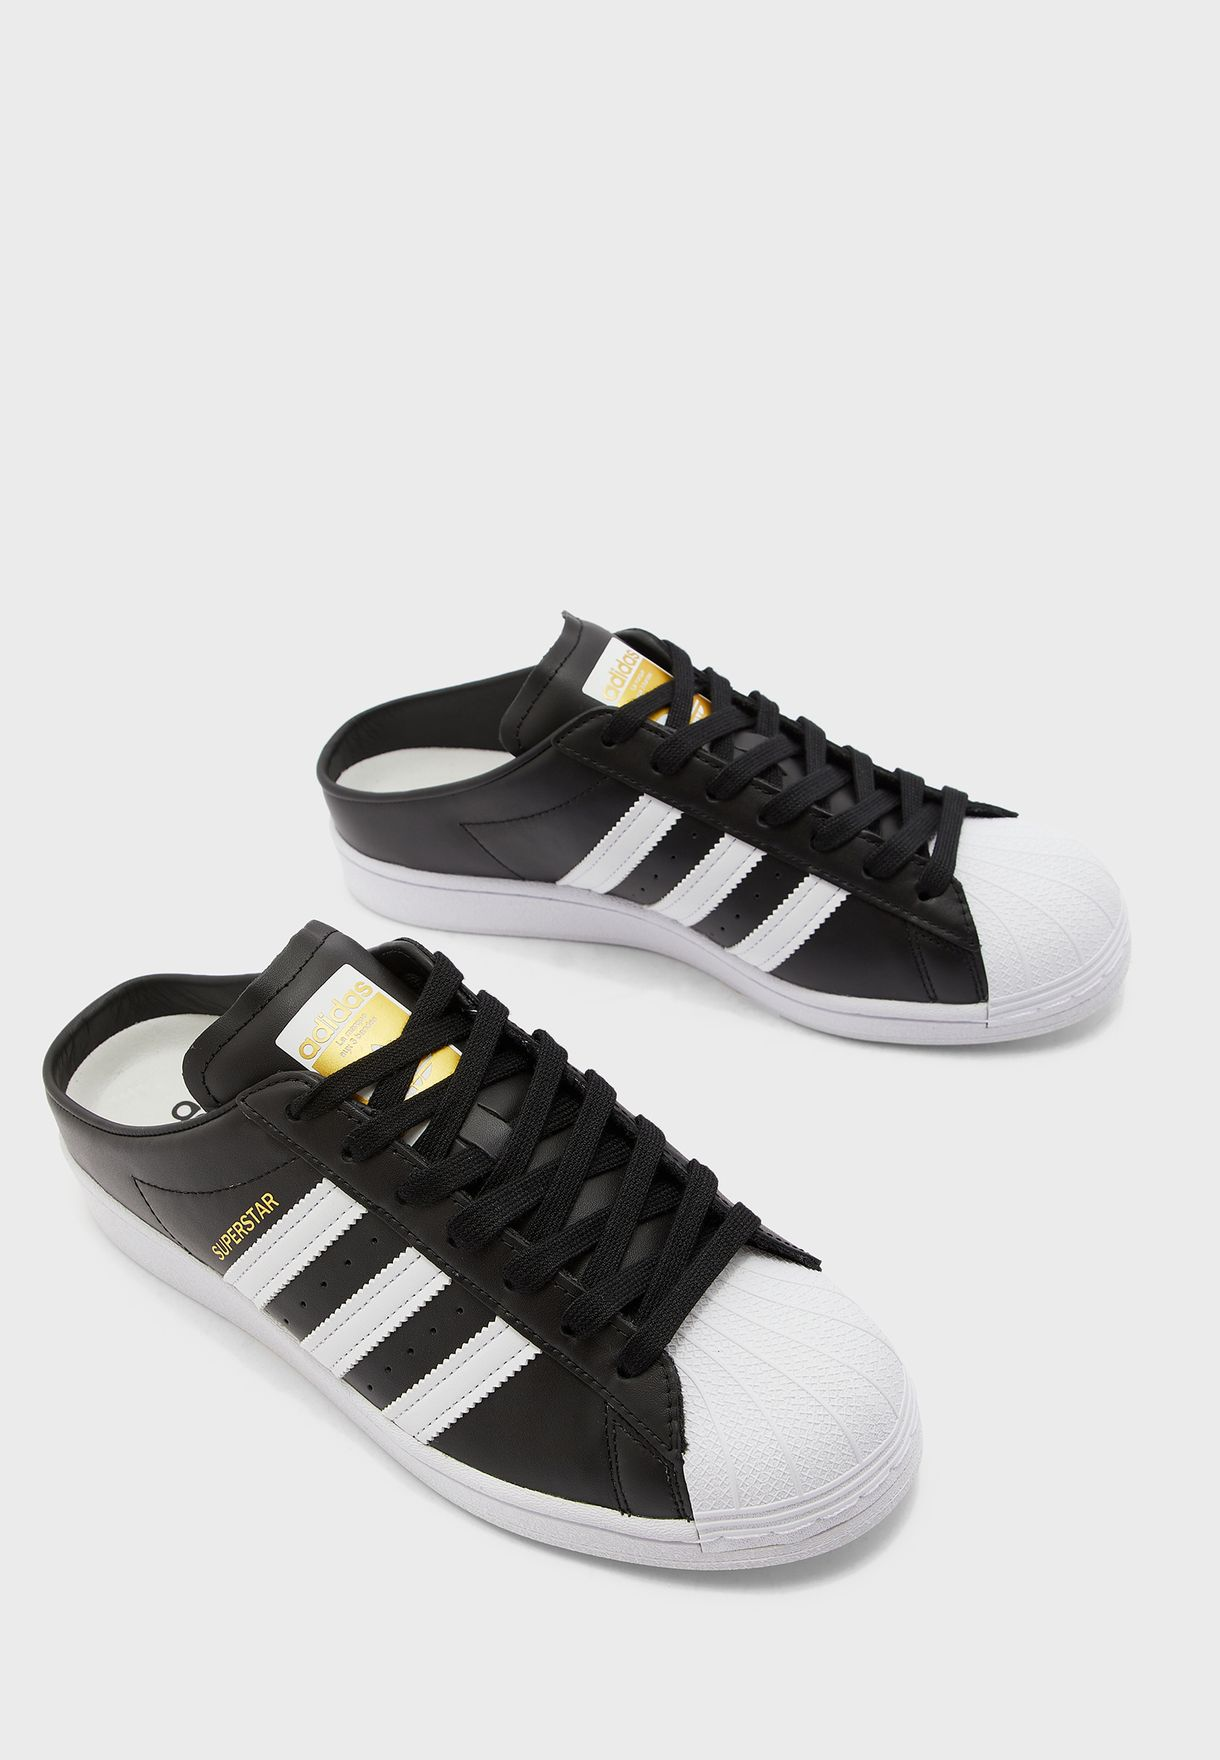 He aprendido proteína Cíclope  Buy adidas Originals black Superstar Mule for Men in MENA, Worldwide |  FX0528